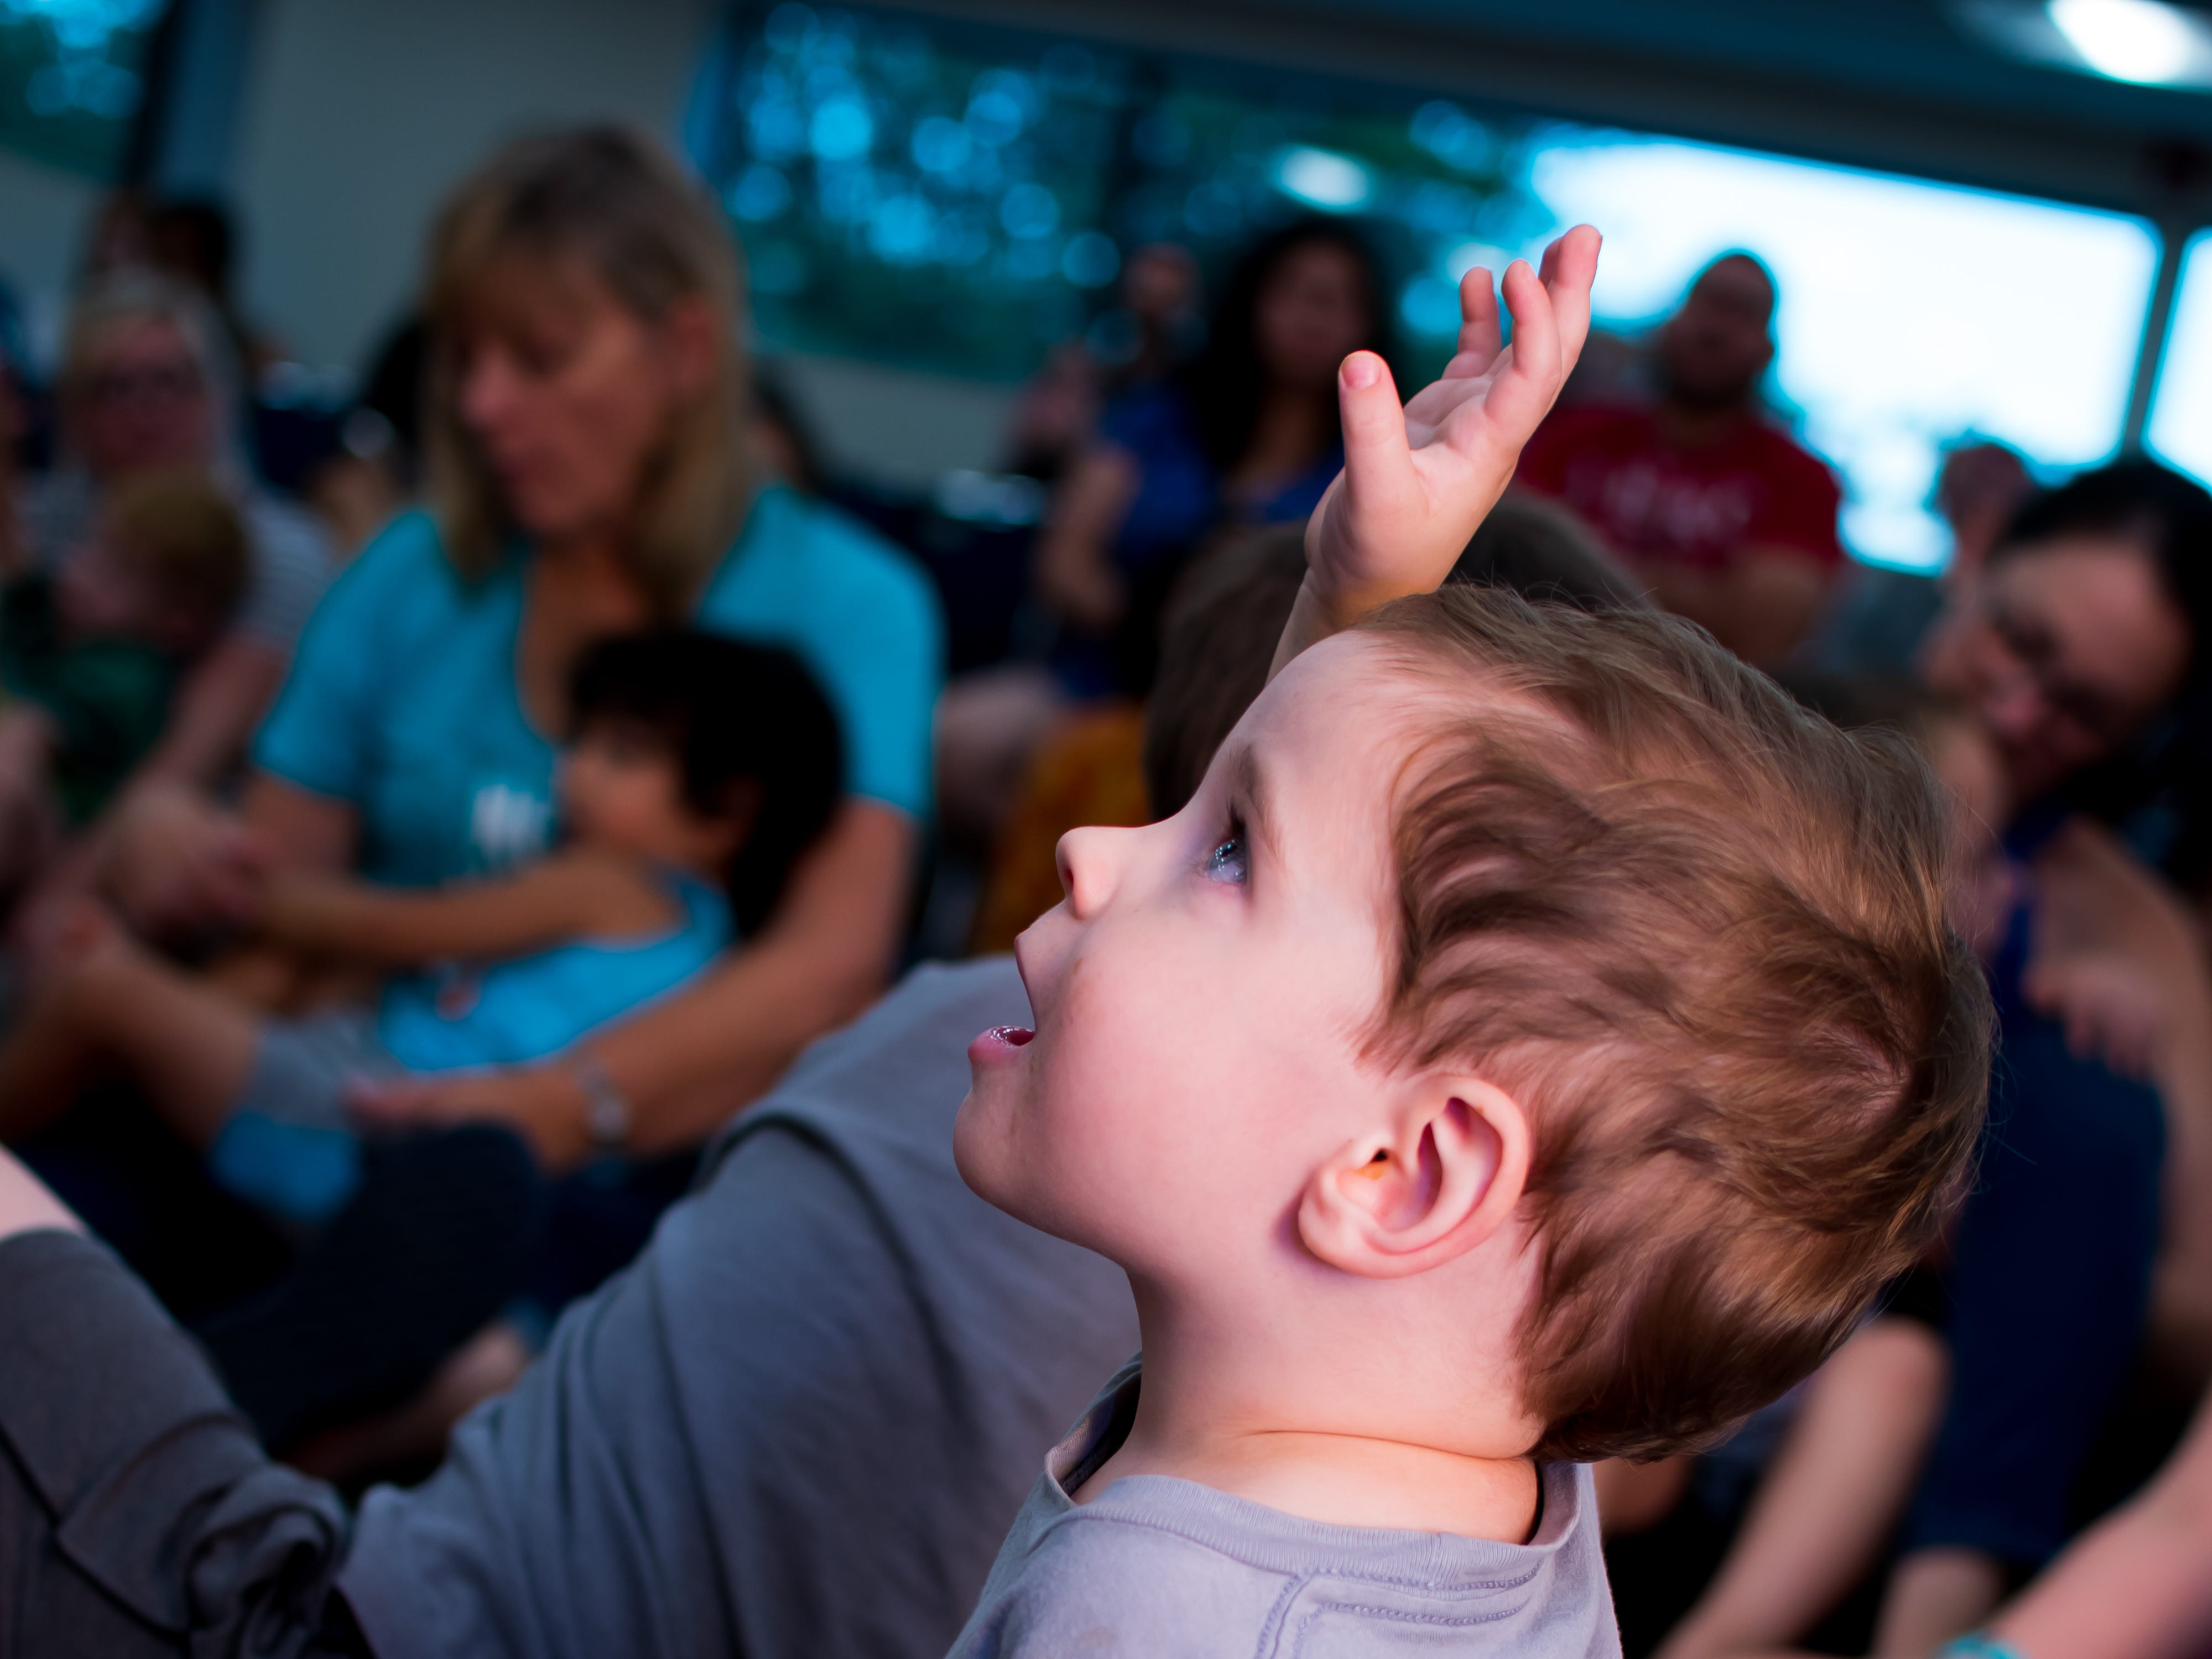 Lincoln Jensen, 2, of Clive raises his hand to ask a question on Thursday, September 20, 2018 at the Clive Public Library's Zoo Show and Tell in Clive.